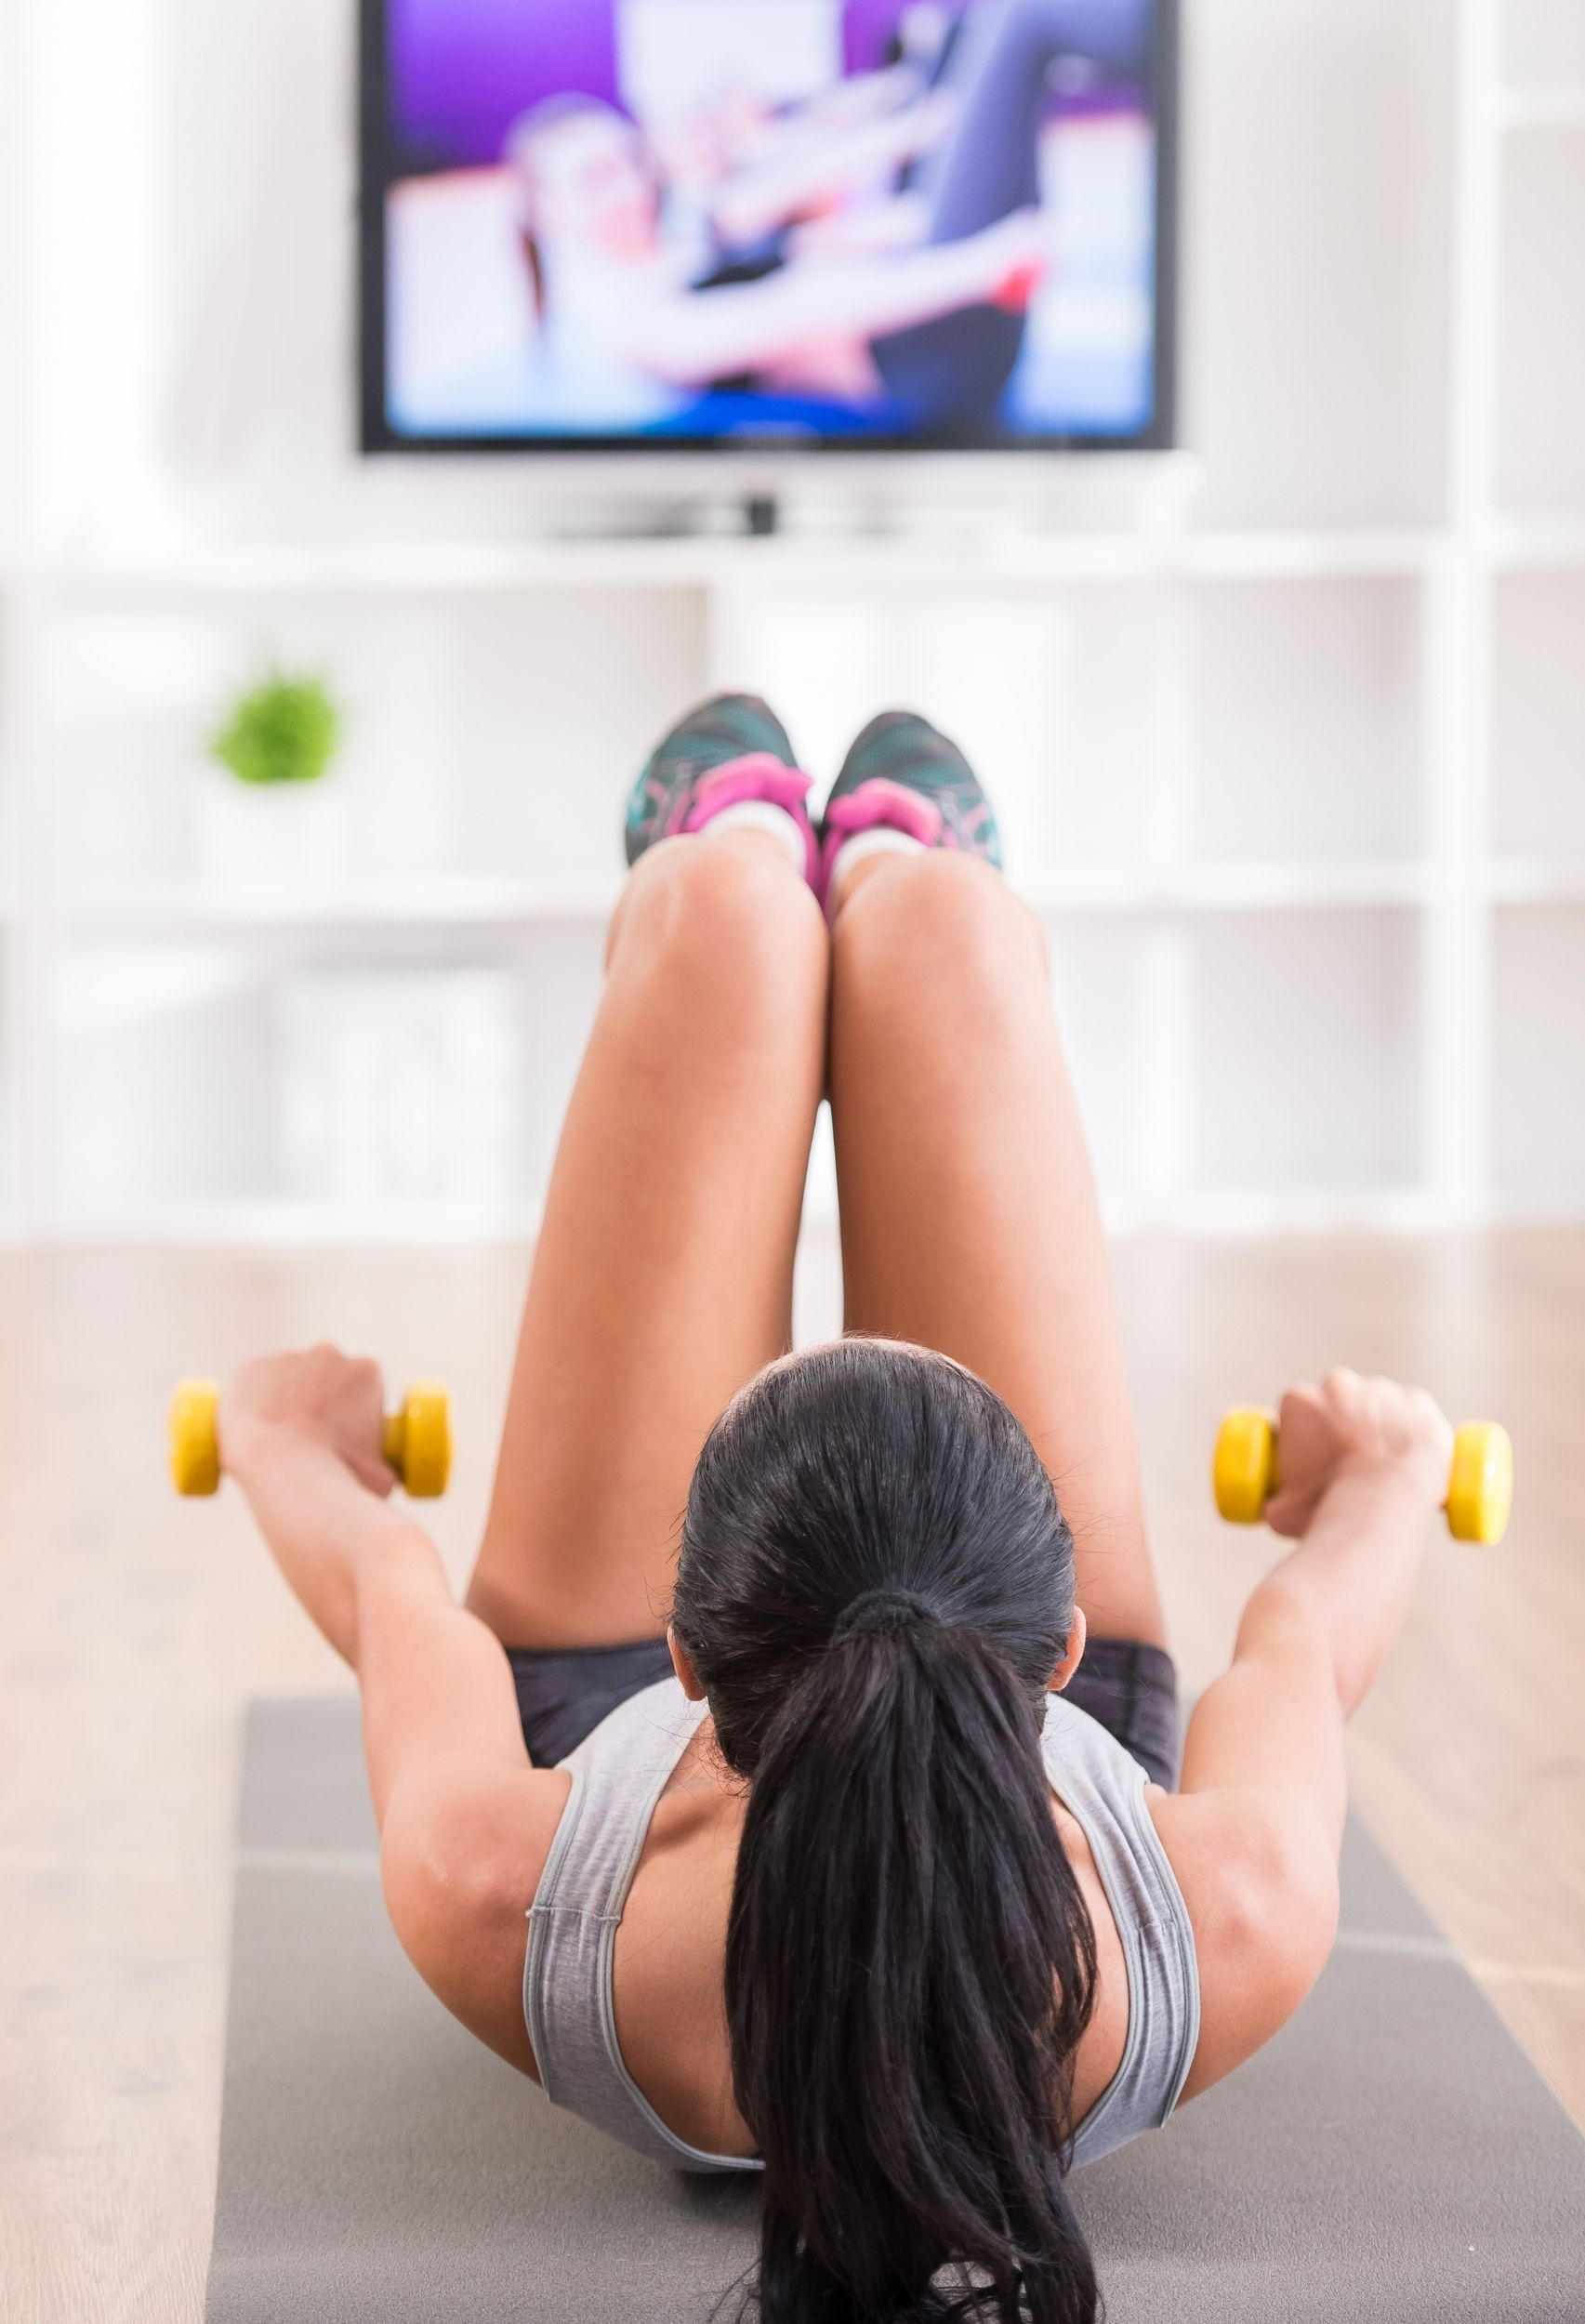 Current Fitness at Home Trends